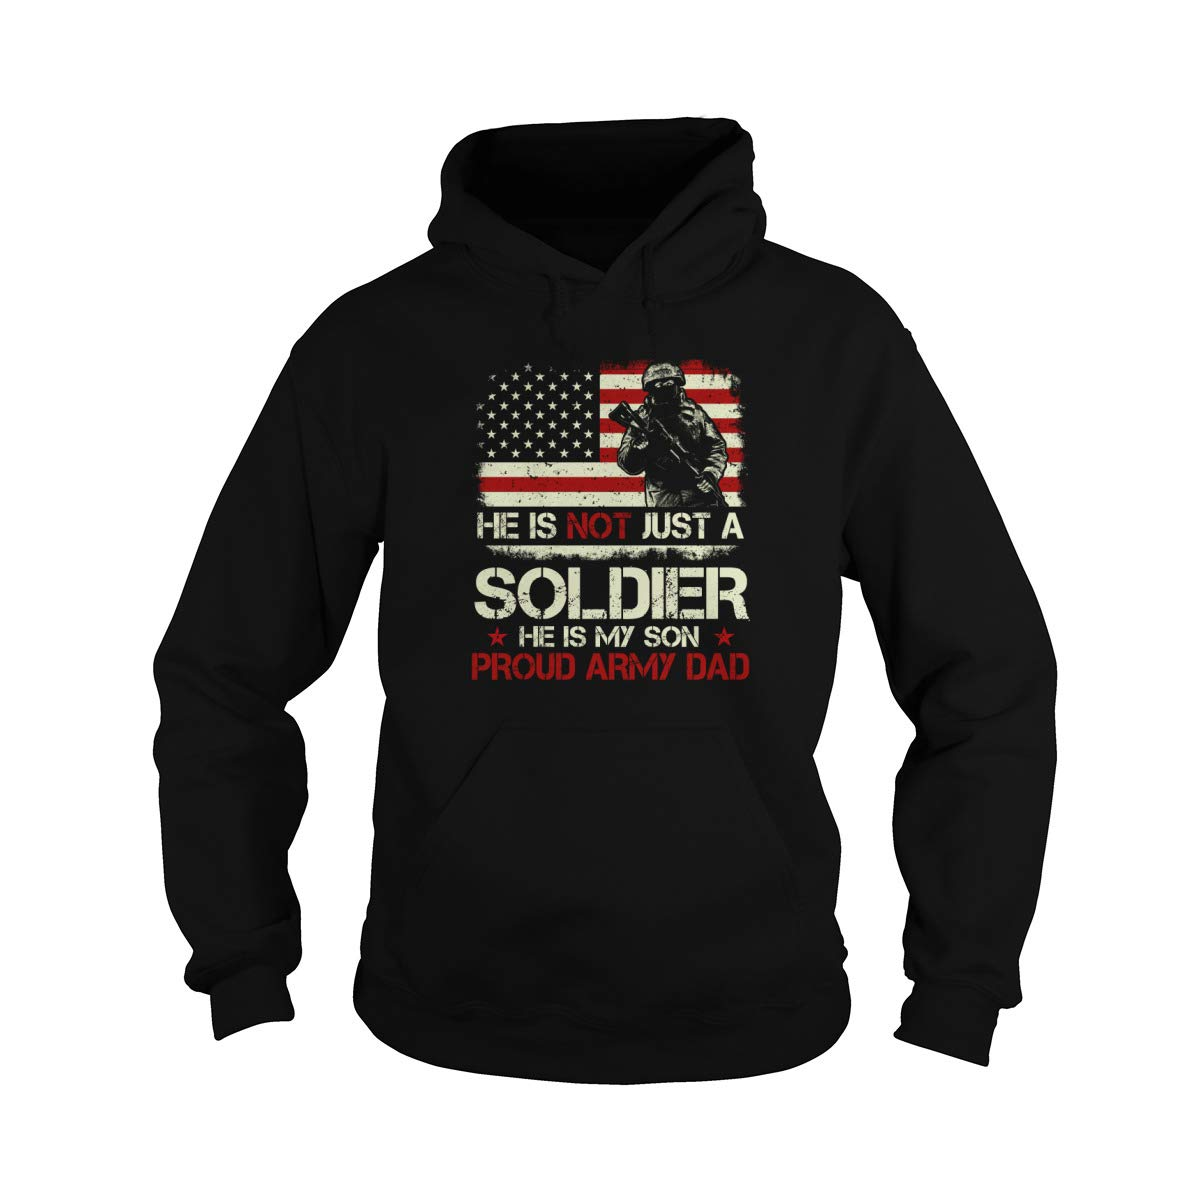 He is Not A Soldier He is My Son Proud Army Dad Adult Hooded Sweatshirt